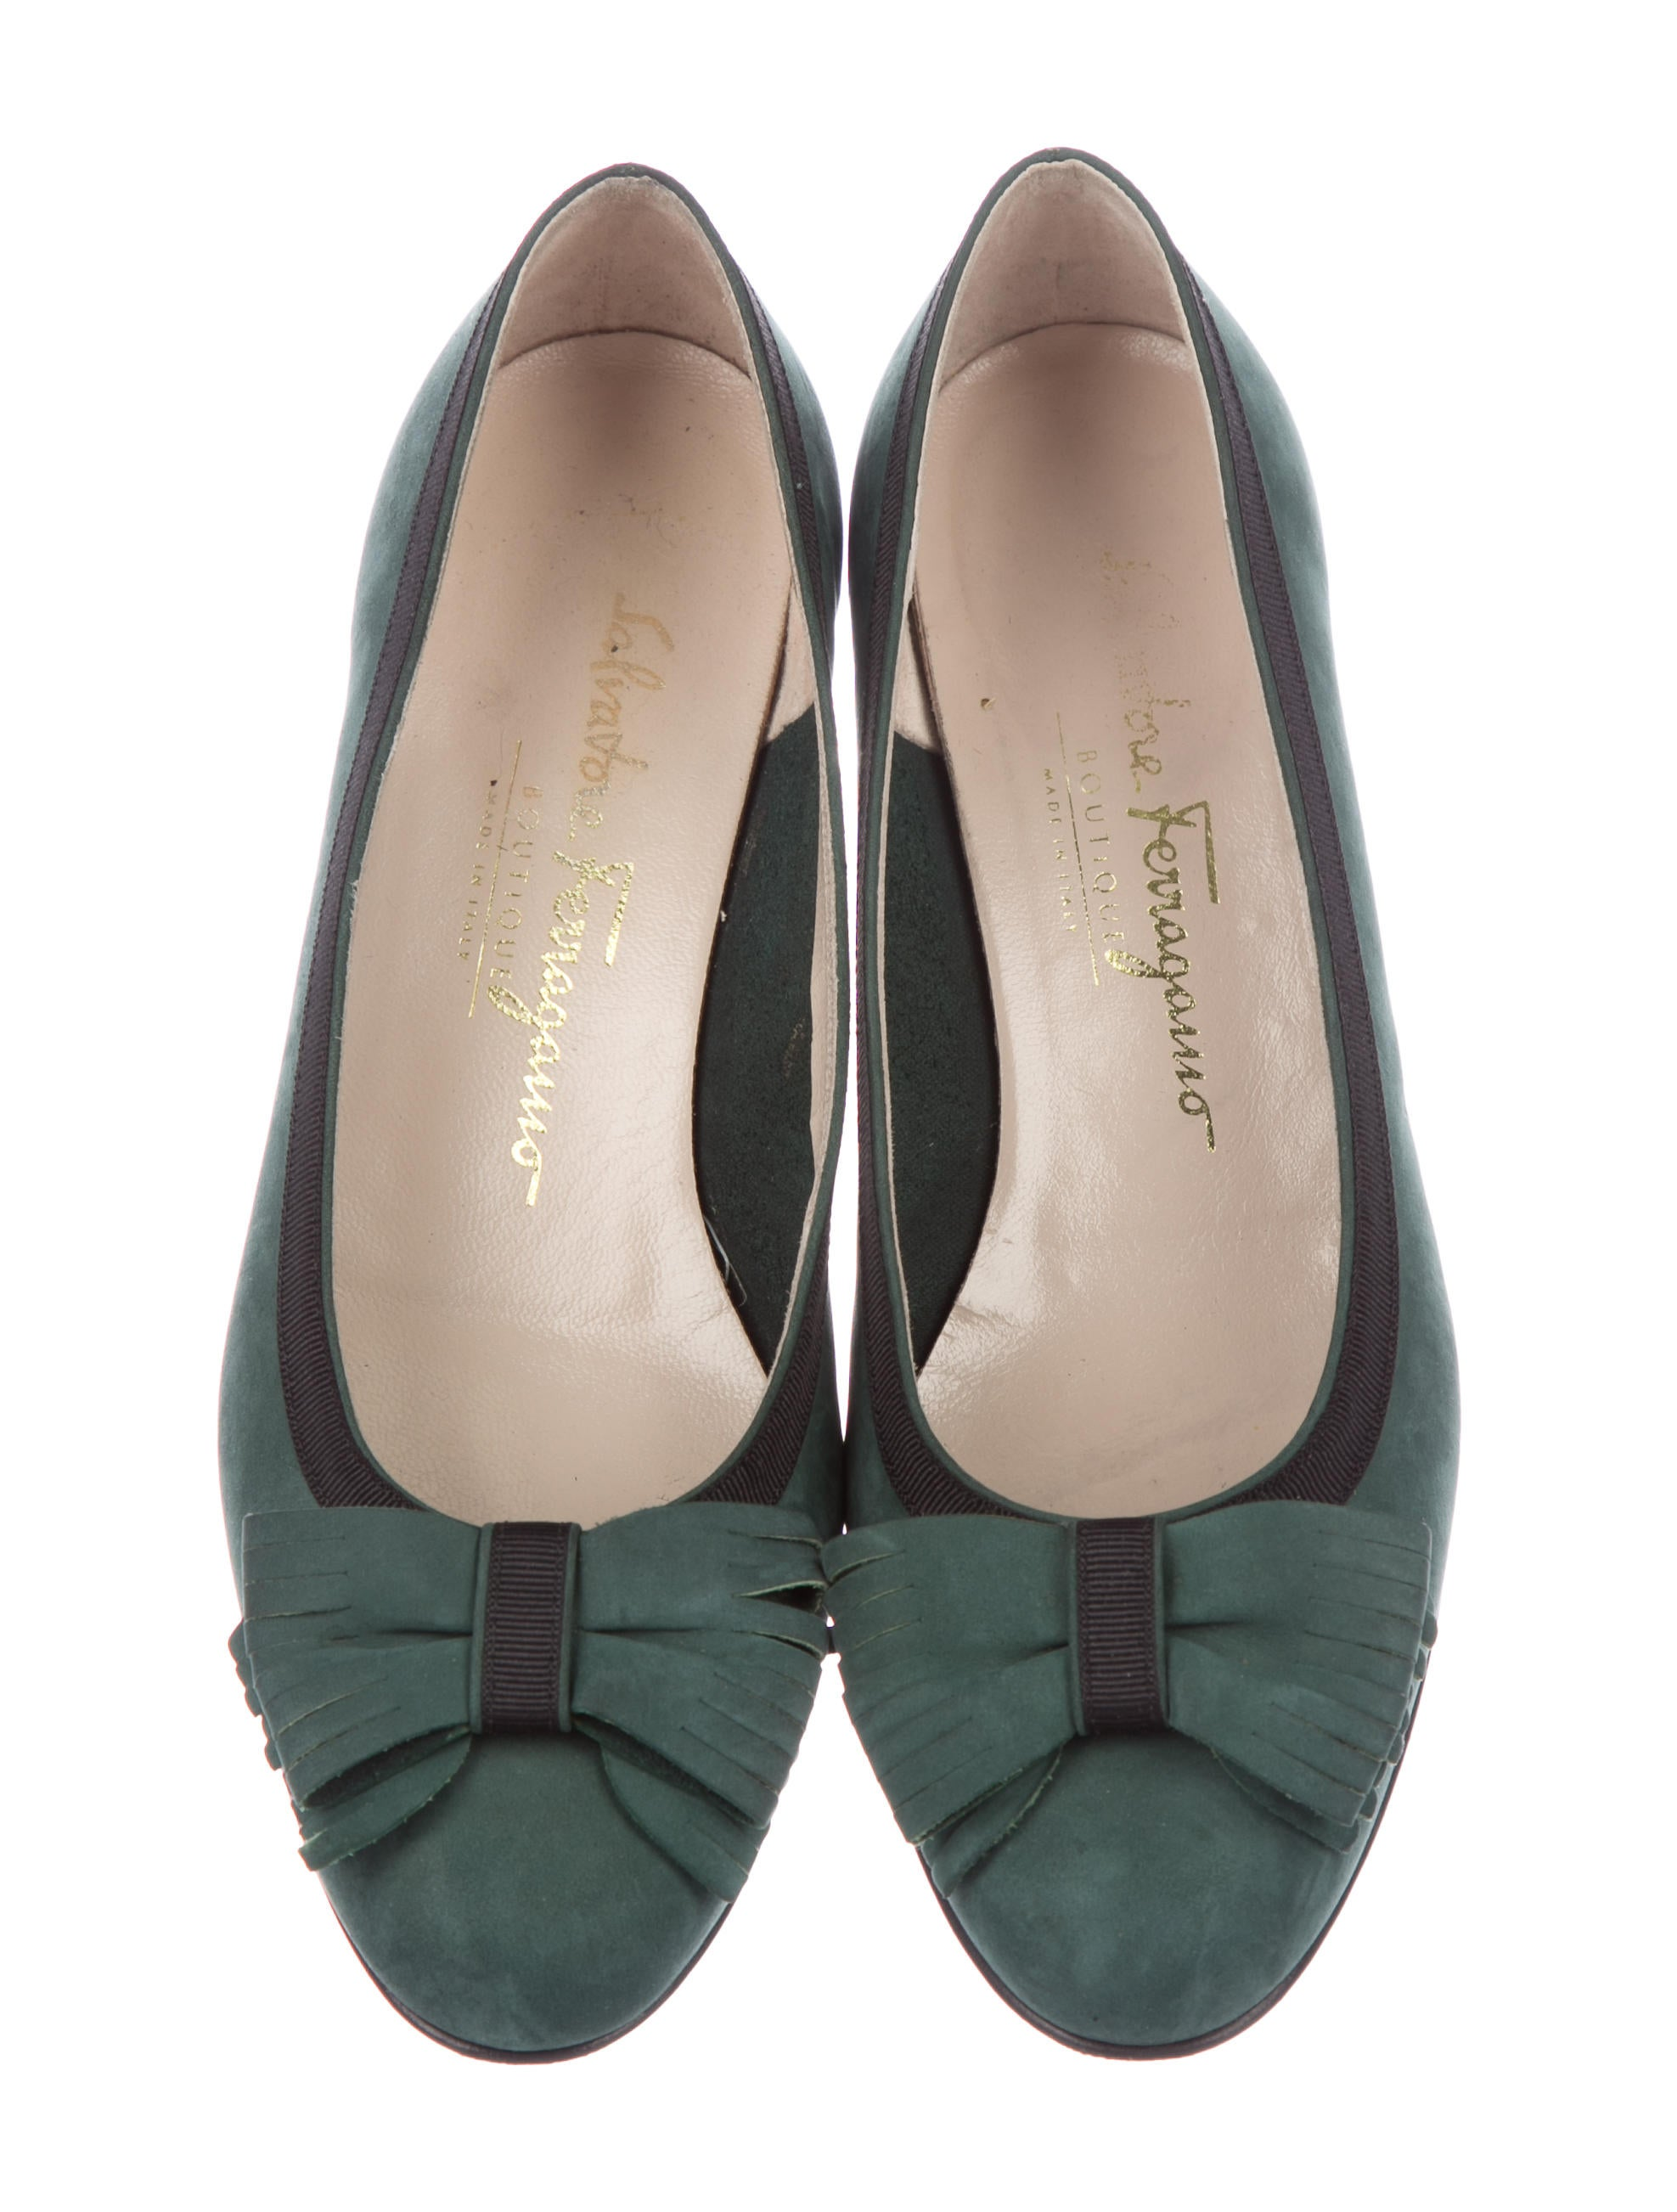 Salvatore Ferragamo Maruska Bow Pumps amazon footaction clearance visa payment free shipping for cheap cheap pick a best cheap eastbay t2lauM